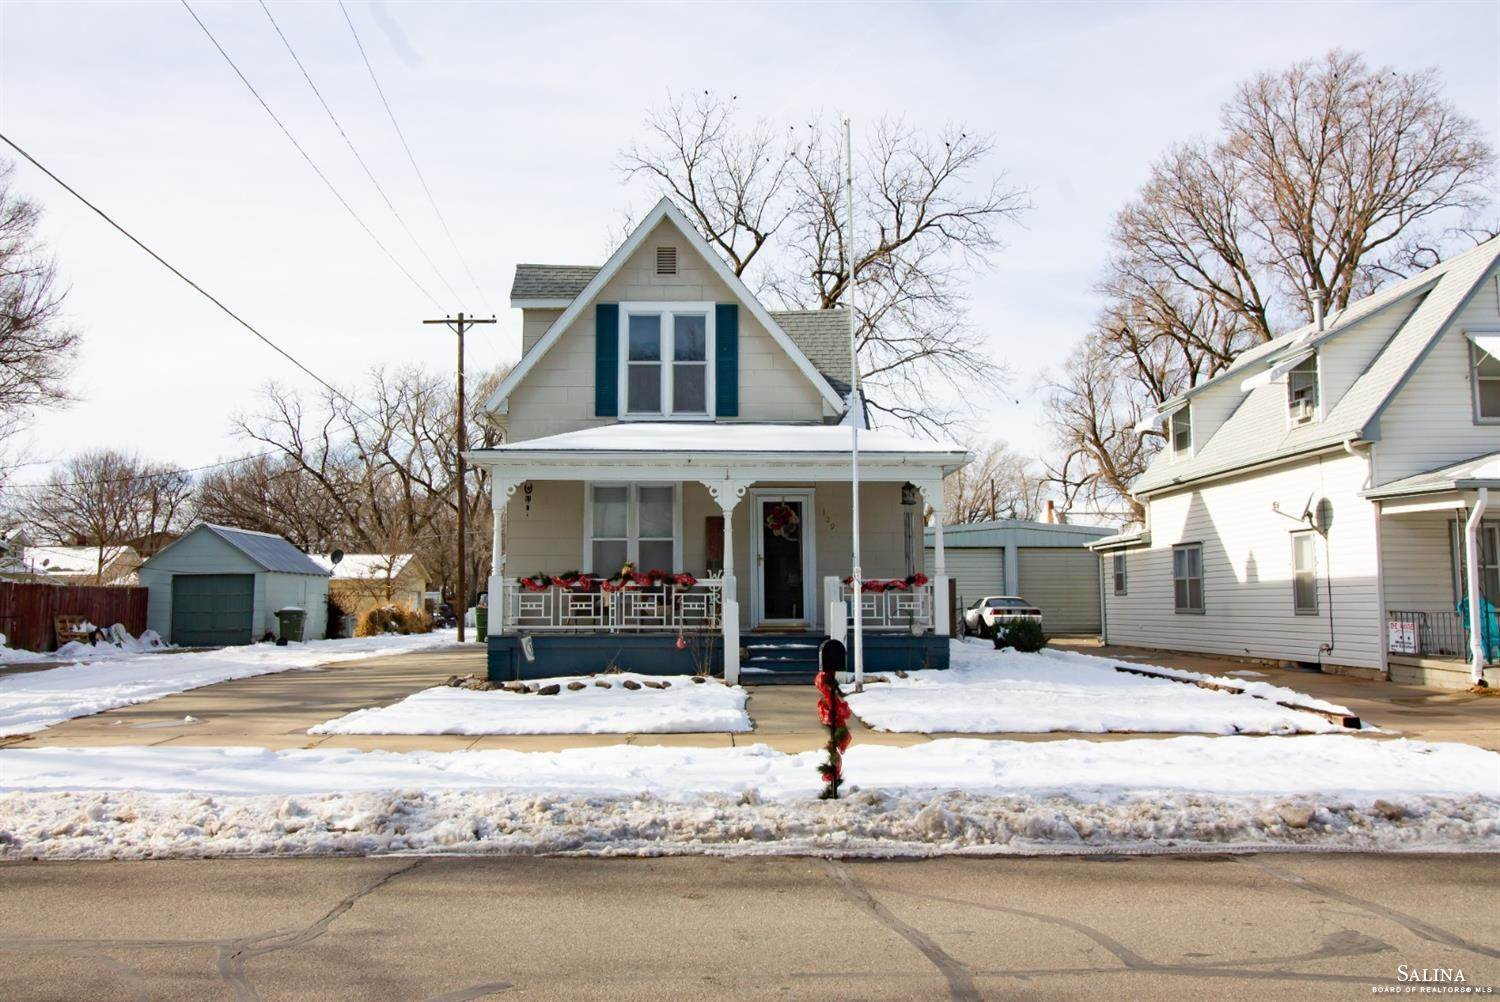 129 North College Avenue, Salina, KS 67401